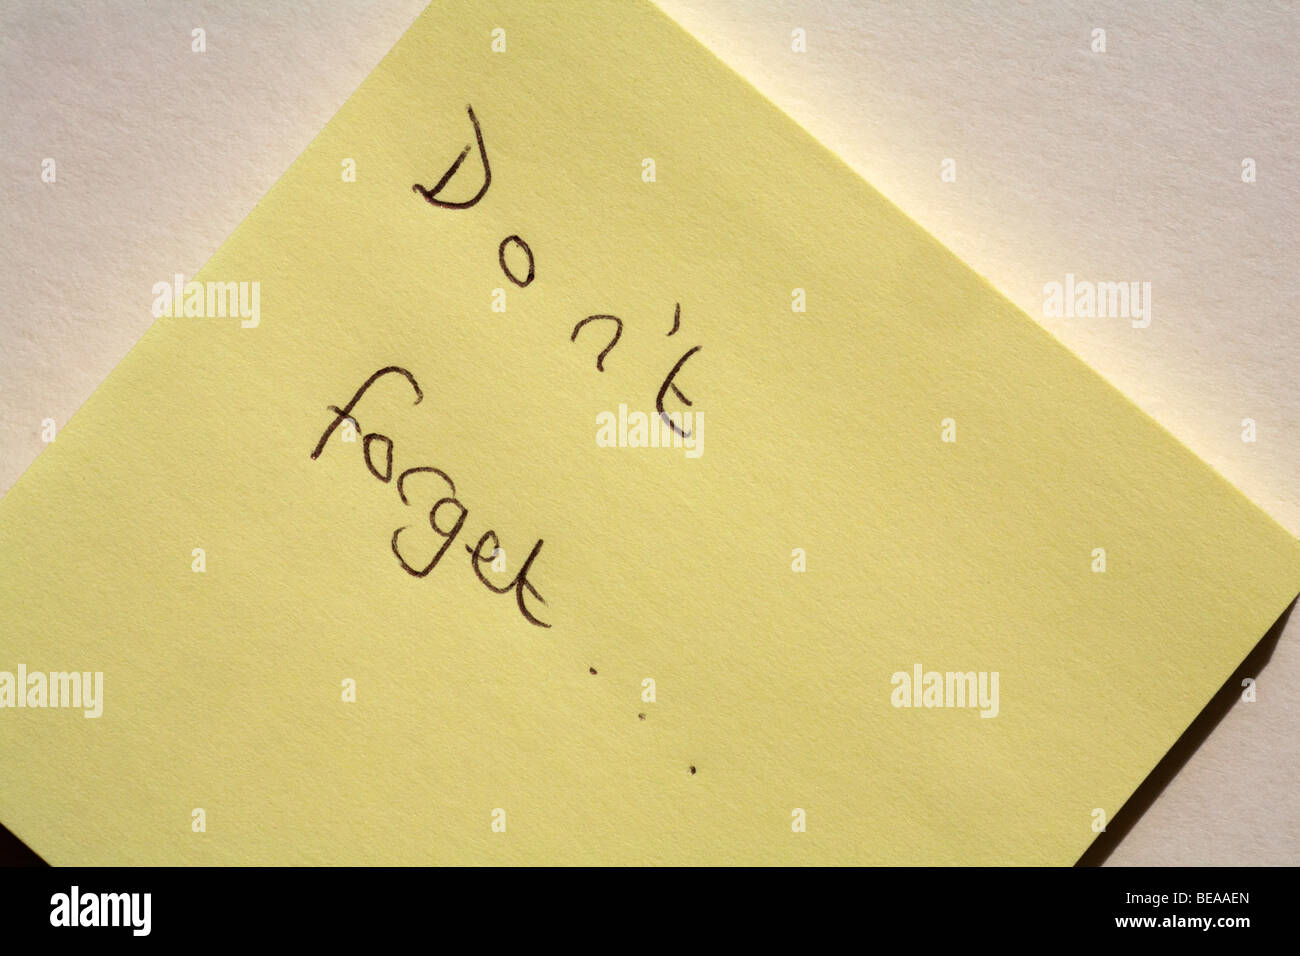 Don't forget reminder message written on yellow post-it note close up set on white background - Stock Image